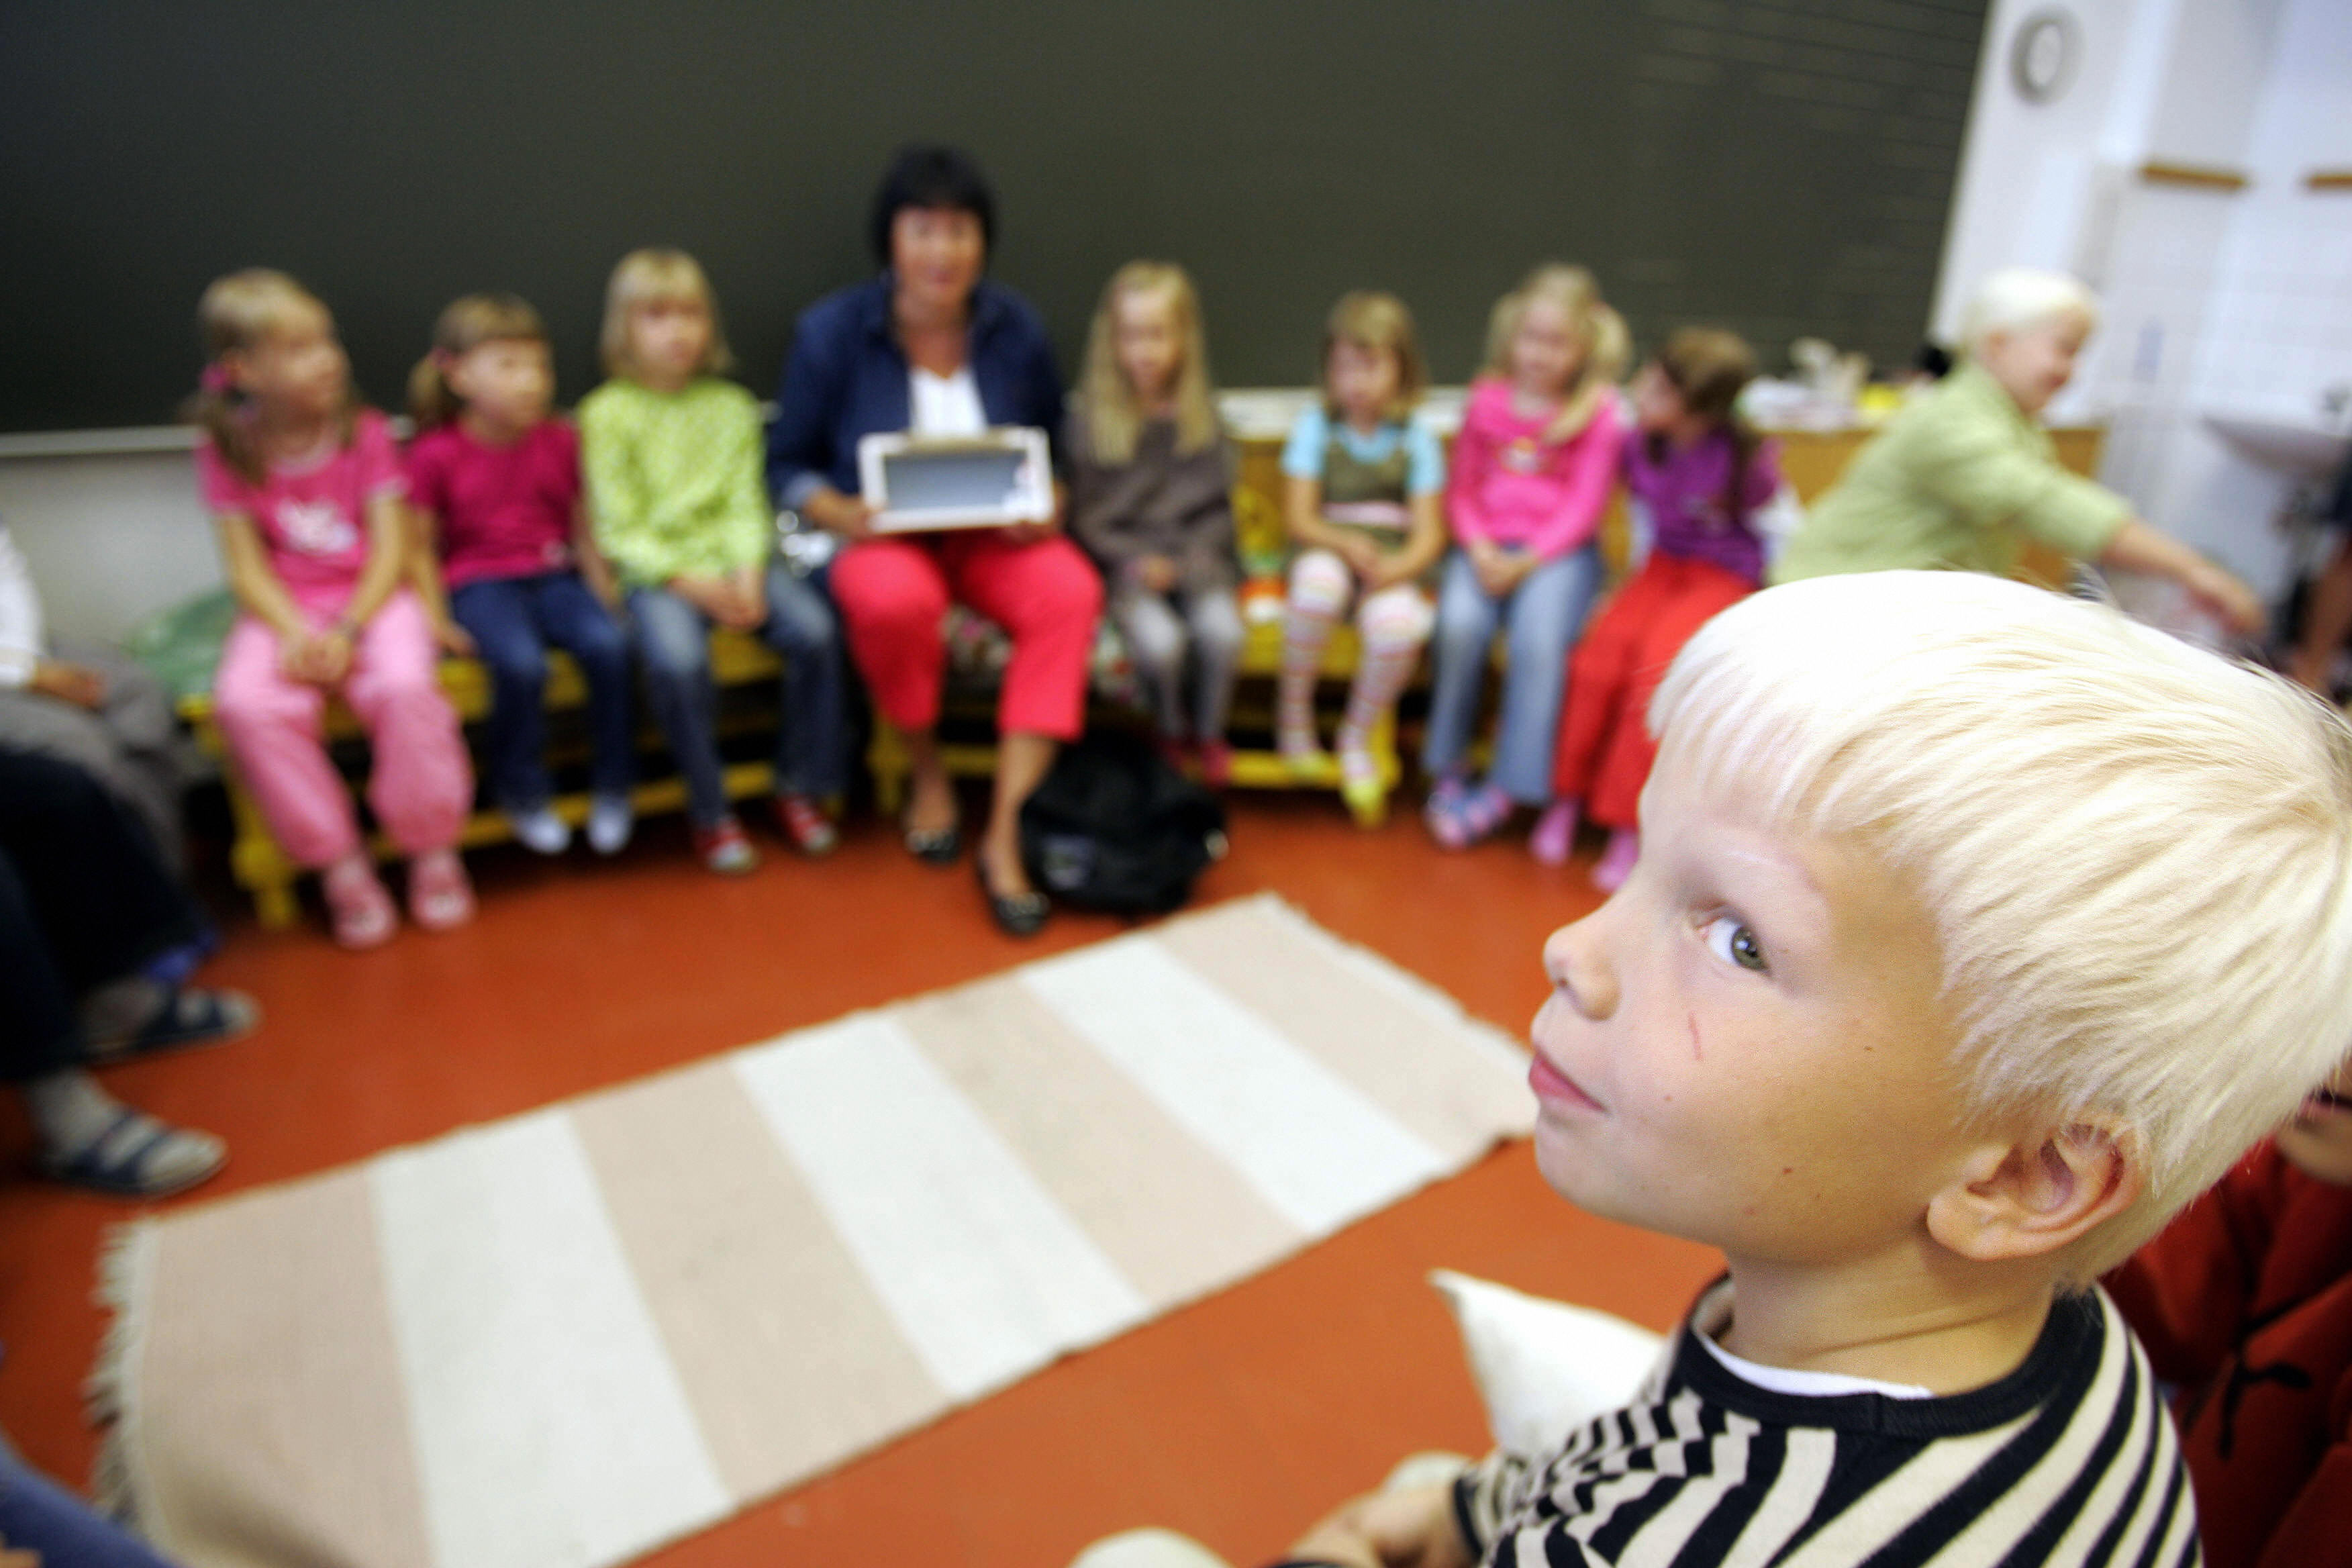 10 reasons Finland's education system is the best - Big Think